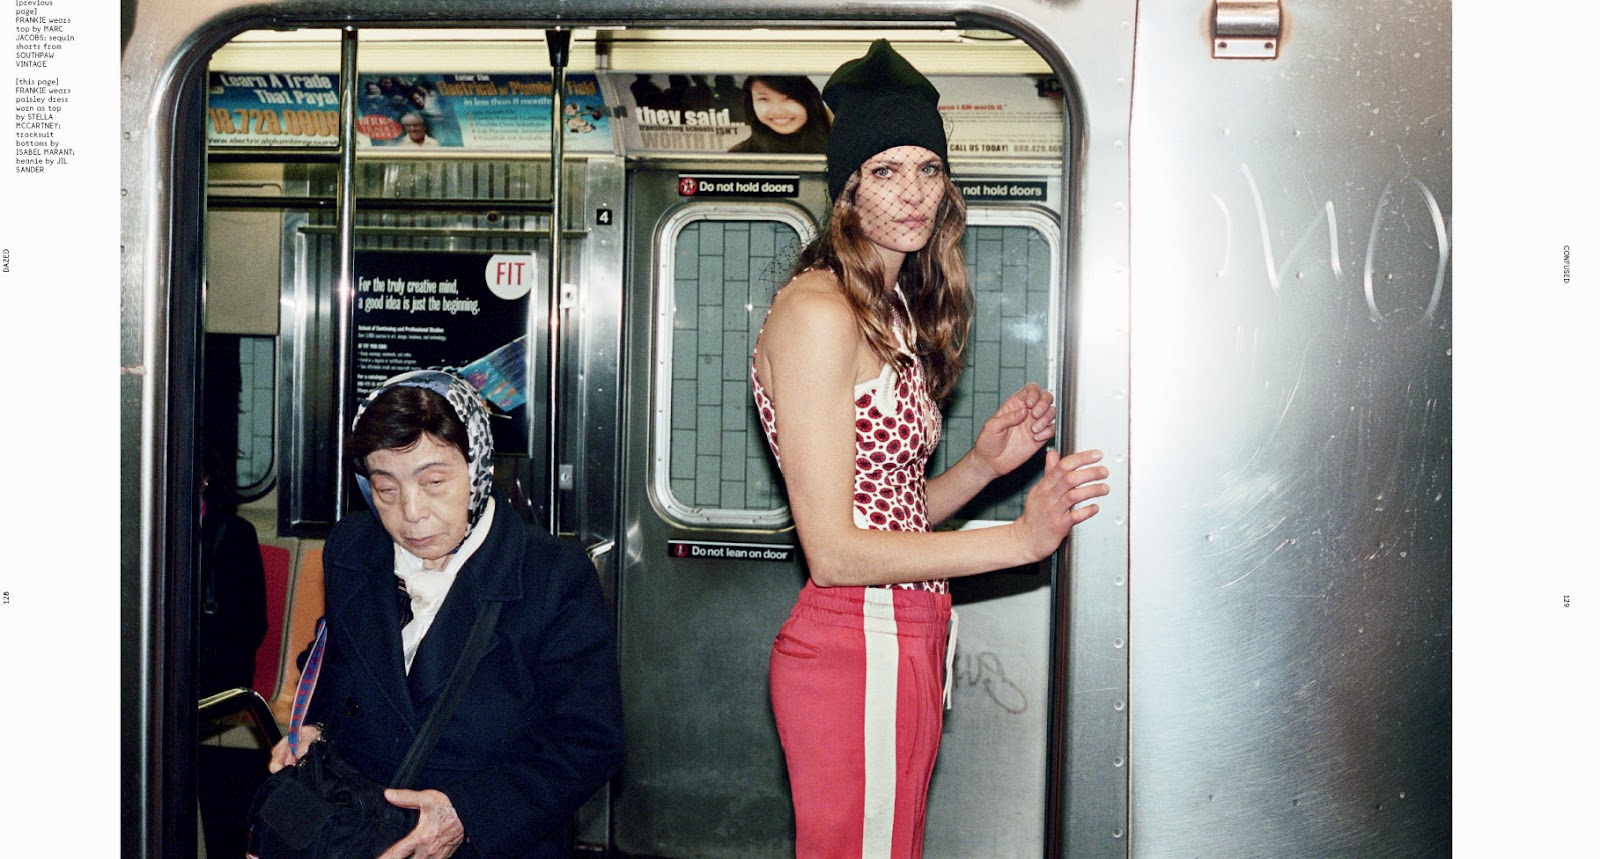 Smile: Frankie Rayder in Dazed & Confused April 2012 by ...